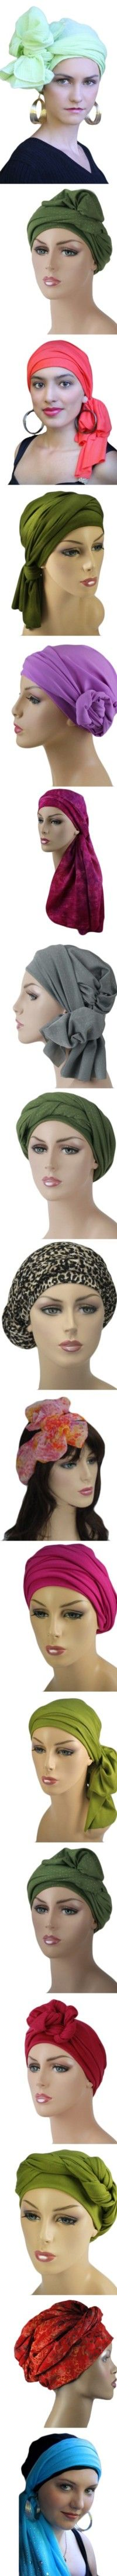 Every Titillating Turbans Turban set is a hat & matching scarf  that can make all these styles, from Boho turban or Bohemian, to office, casual, or elegant evening head wrap.